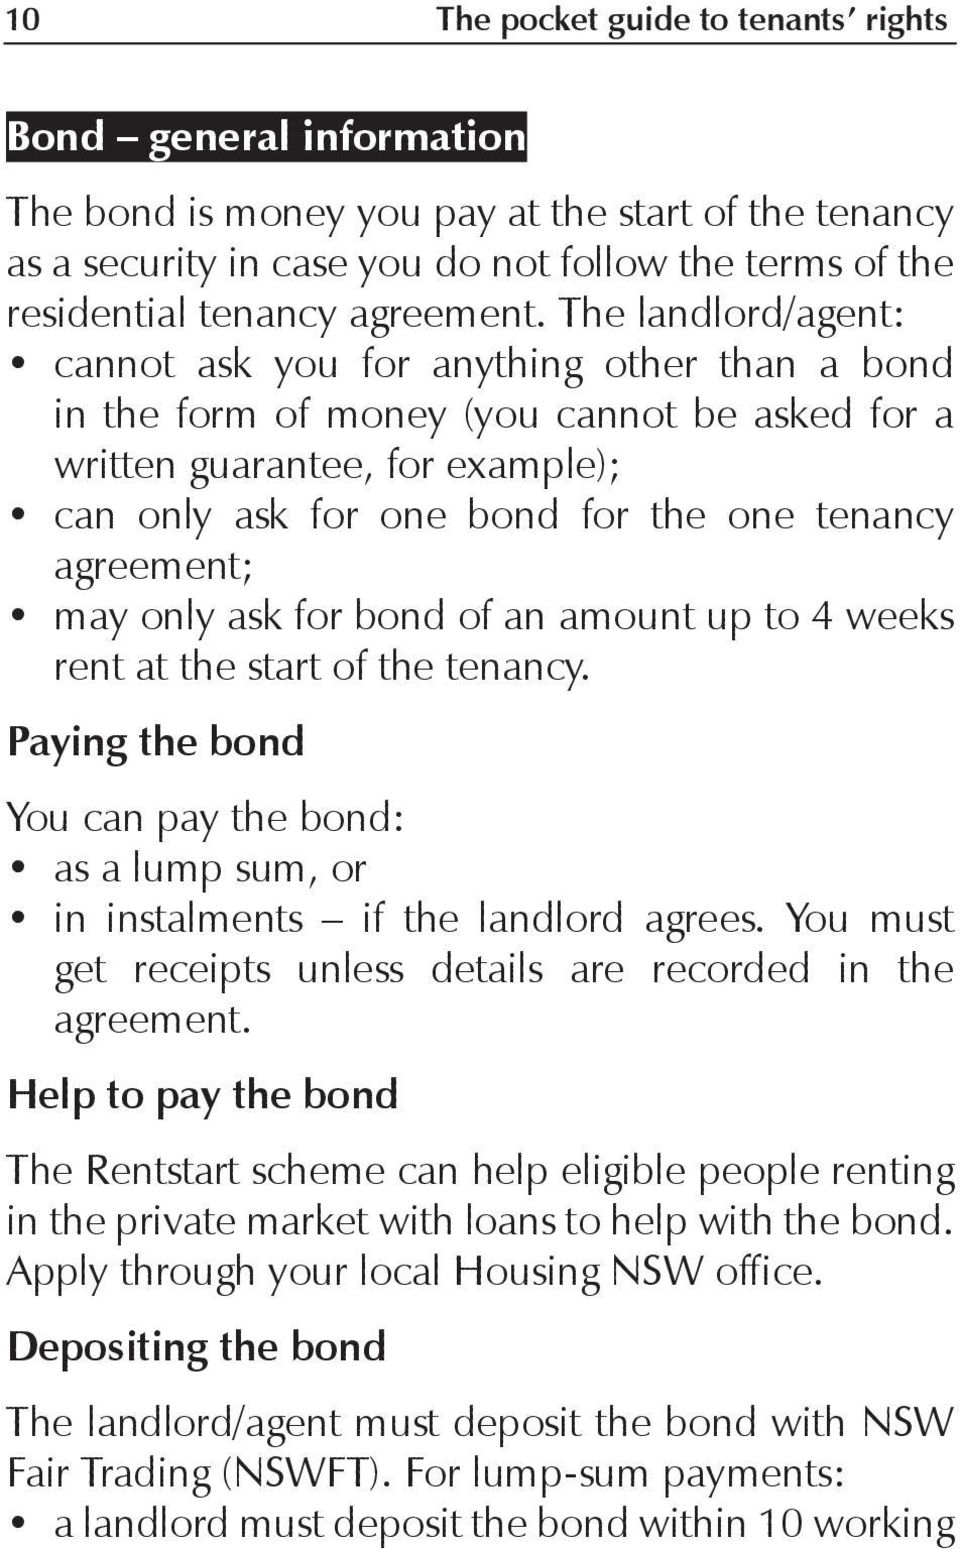 The landlord/agent: cannot ask you for anything other than a bond in the form of money (you cannot be asked for a written guarantee, for example); can only ask for one bond for the one tenancy